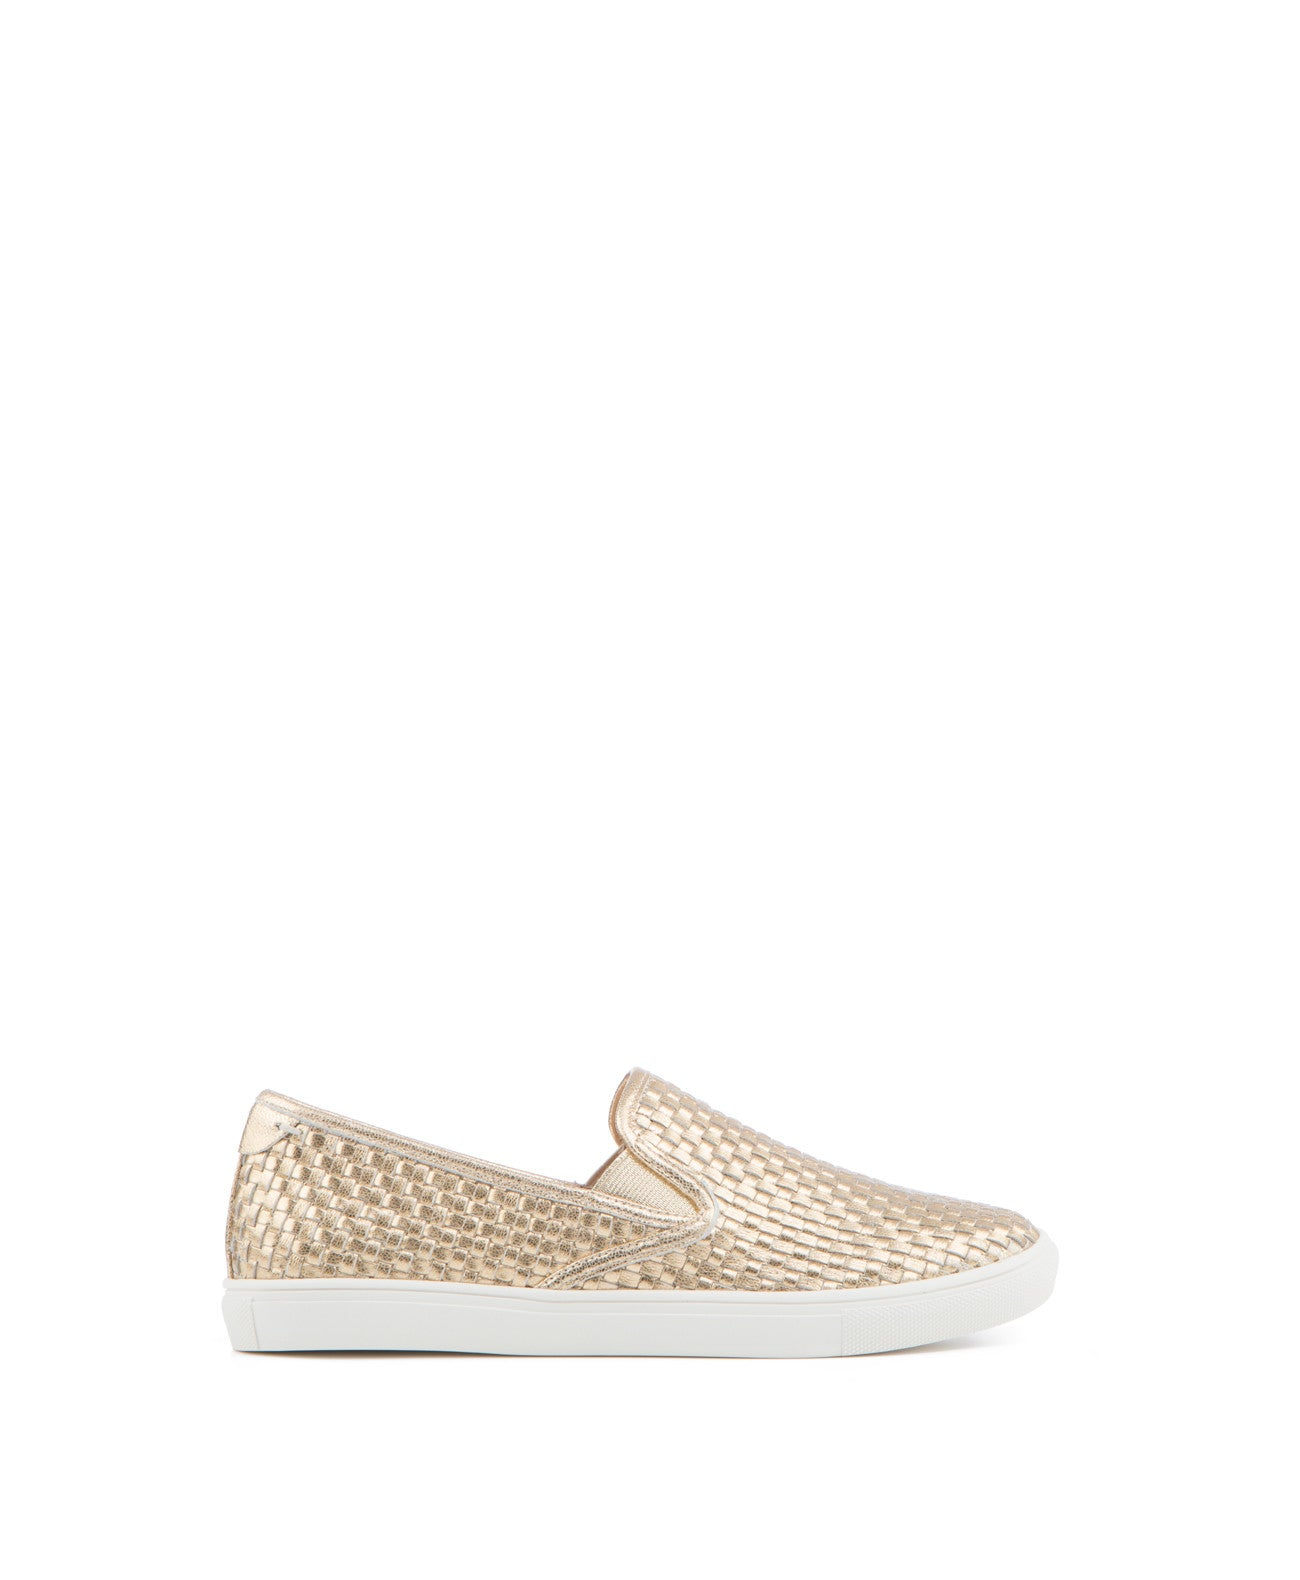 Calina Woven Leather Slip-on Sneaker - Koko & Palenki - 1